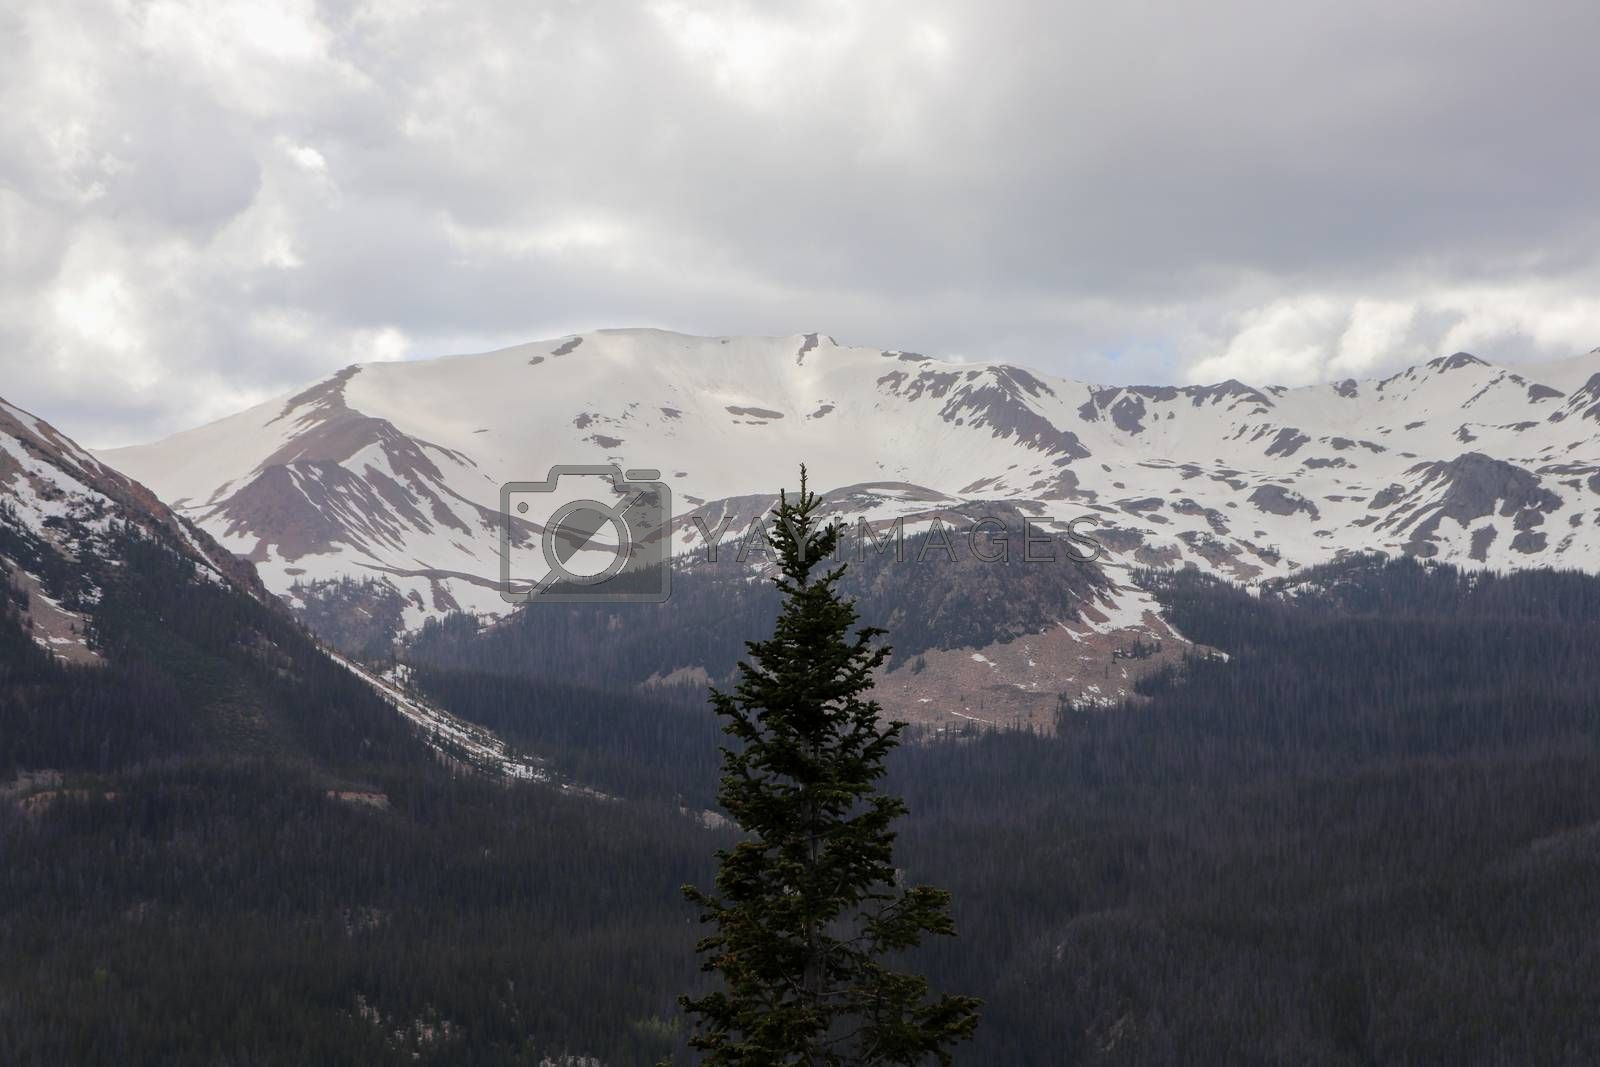 A view of the side of the Colorado mountain. High quality photo